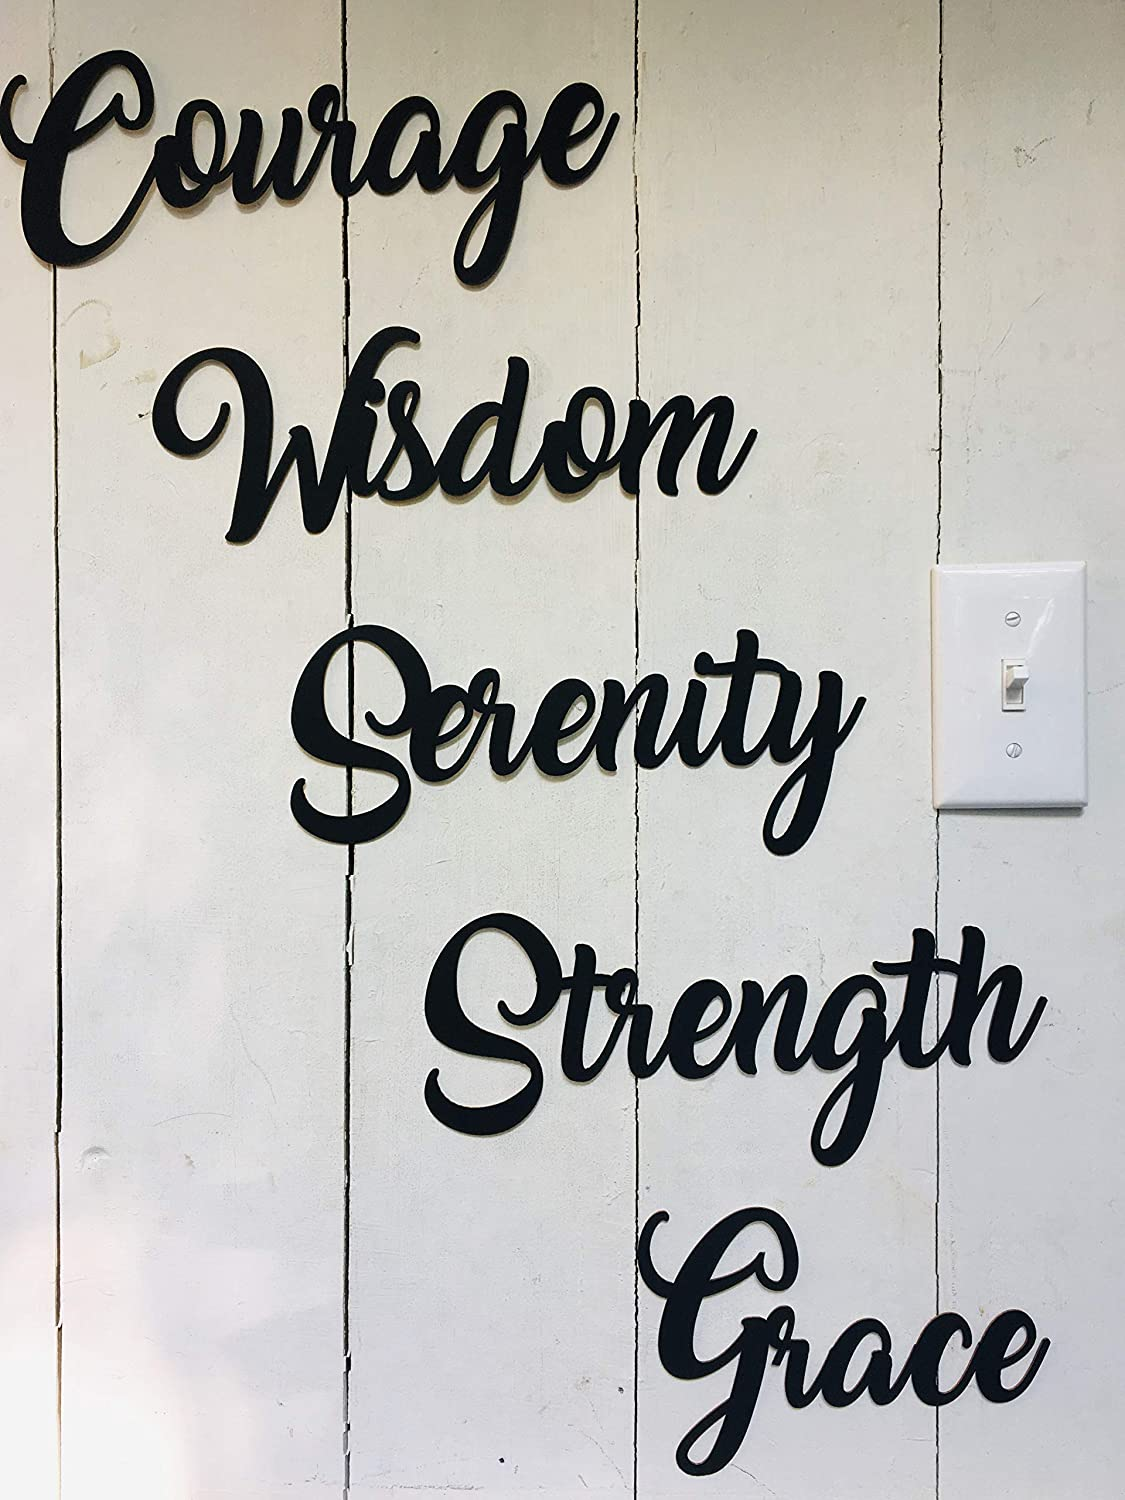 Courage Wisdom Serenity - Family Home College Dorm Not Vinyl Decal or Peel Stick Removable using Sticky Putty Paintable reusable Art Wall Décor Gift Inspiration ..